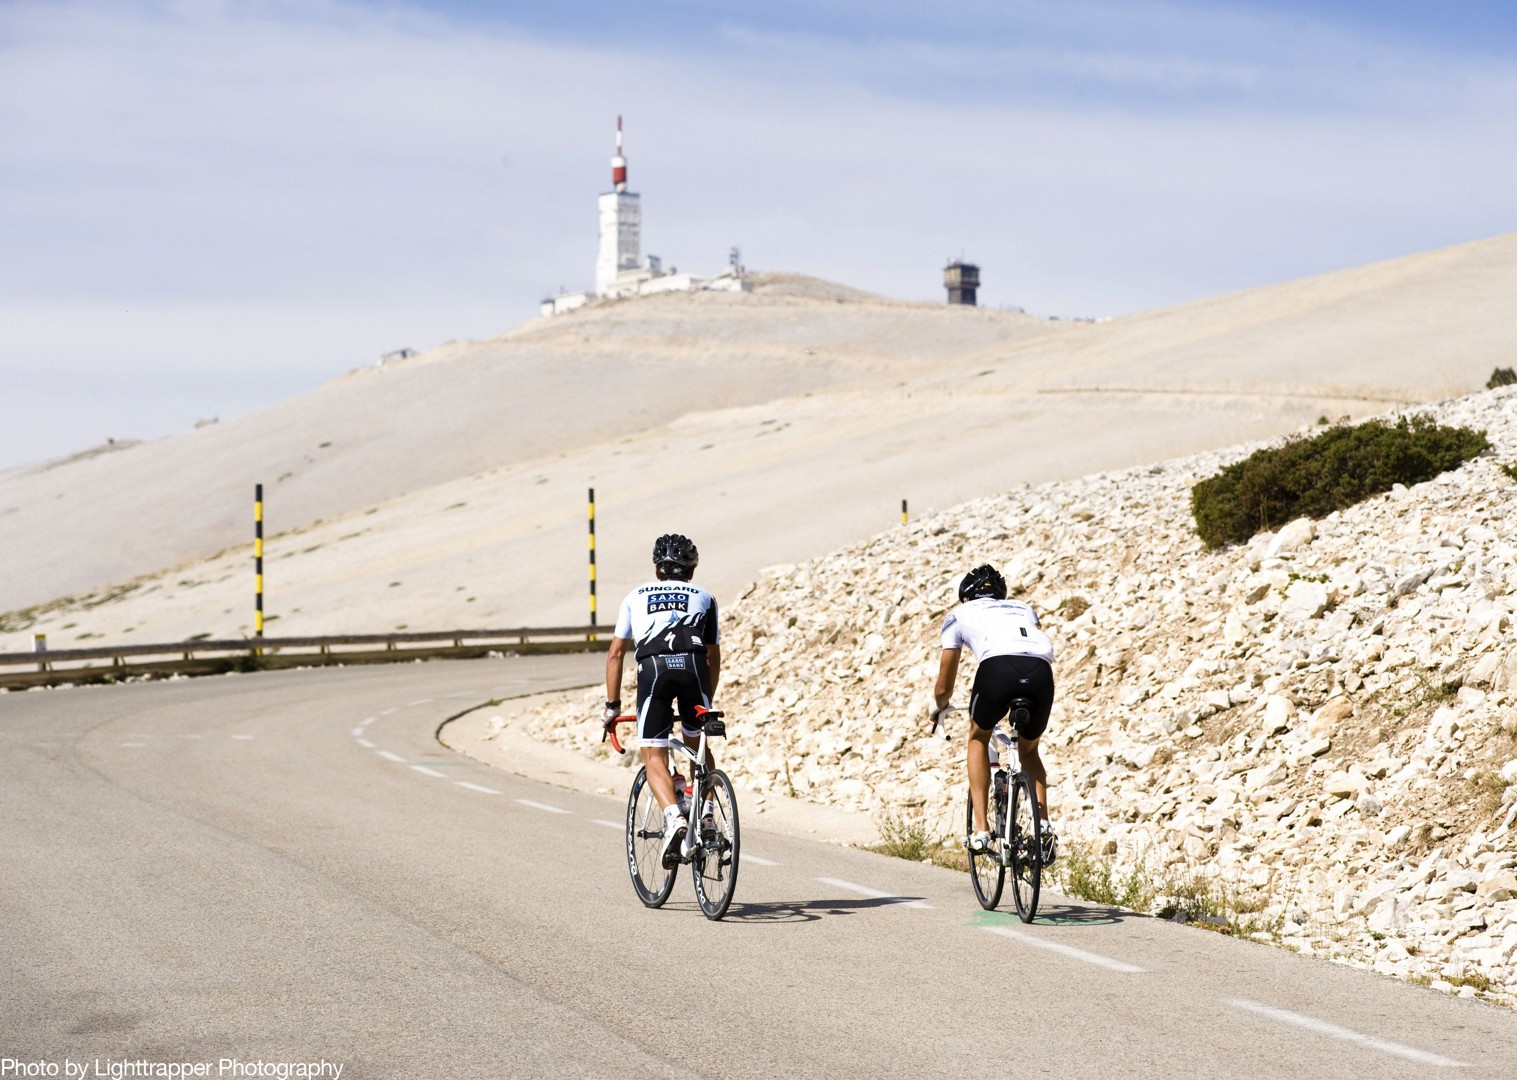 mont-ventoux-road-cycling-provence-france.jpg - France - Provence - Le Ventoux a Velo - Guided Road Cycling Holiday - Road Cycling